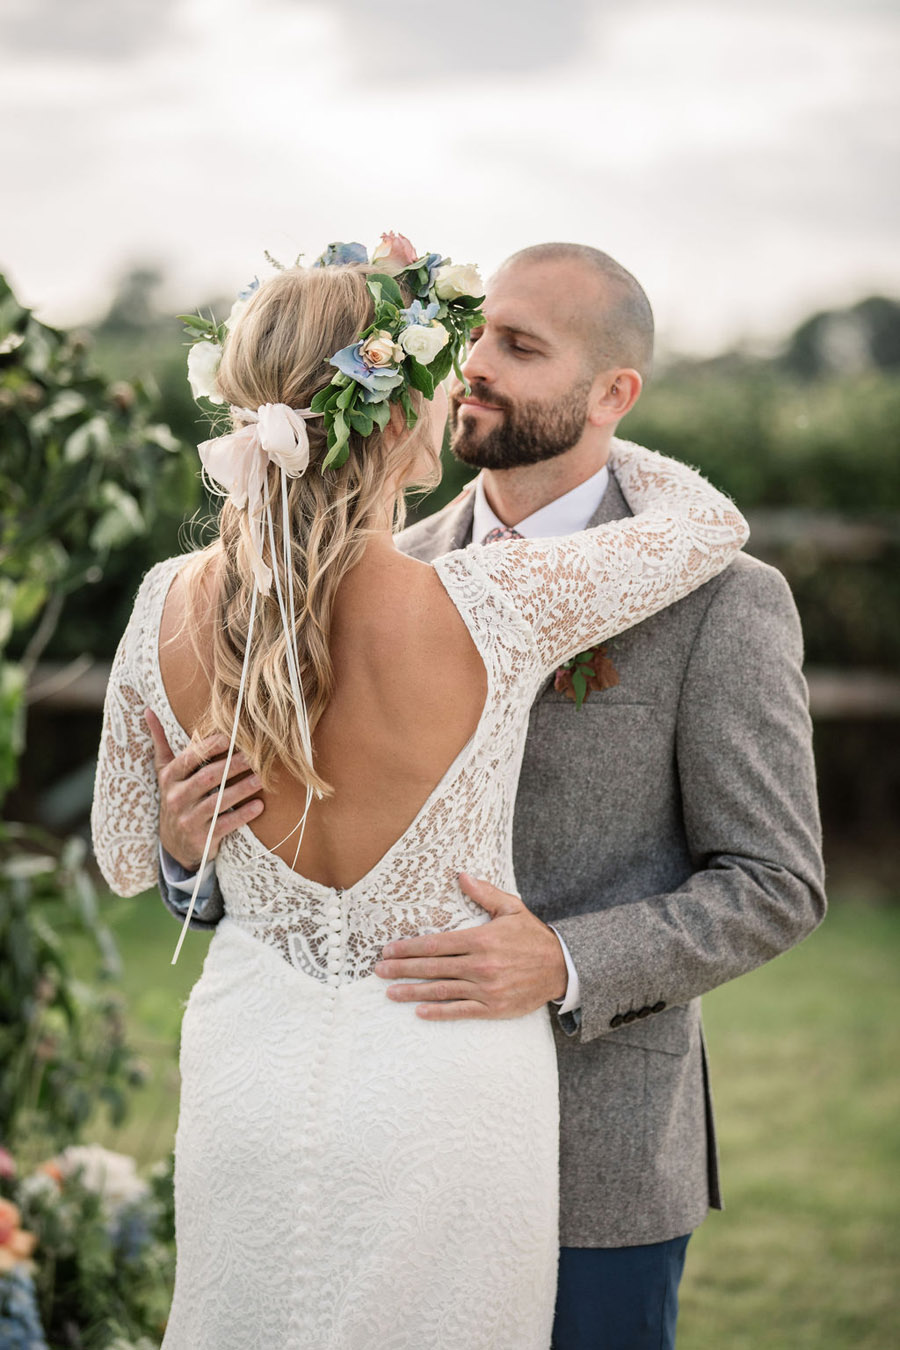 Evening sunset wedding inspiration at Willow Grange Farm, with Becky Harley Photography (28)